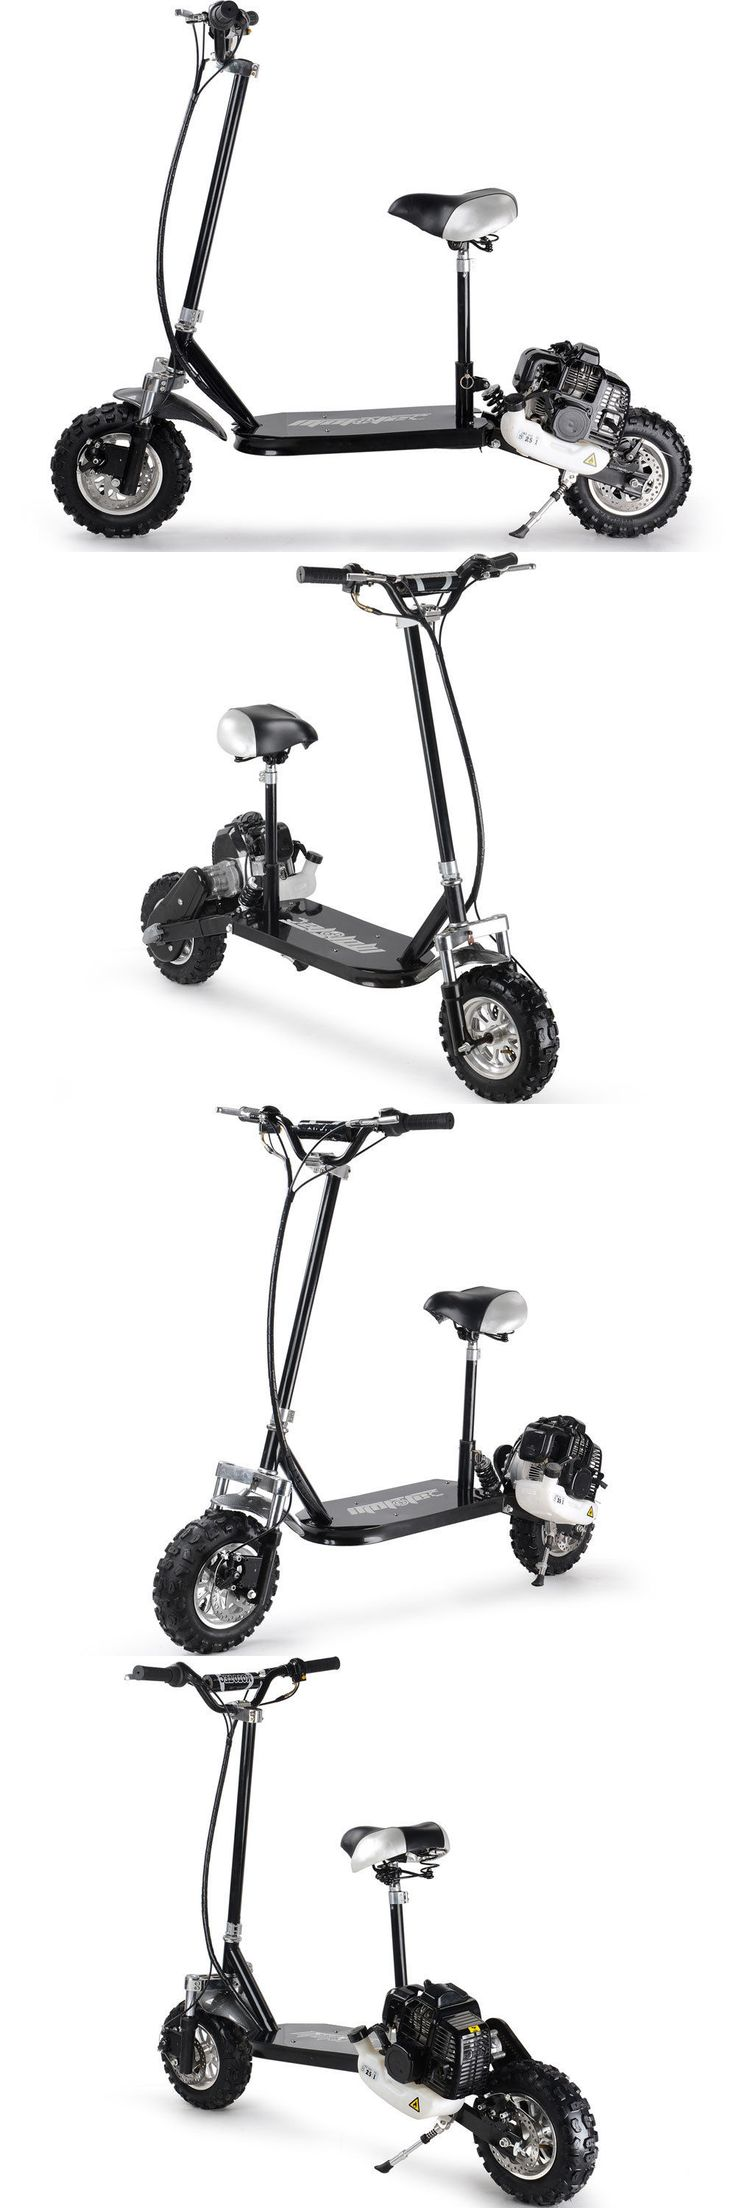 Gas Scooters 75211: New Mototec 3 Speed Shifter 49Cc Gas Scooter With Seat Knobby Tires Mt-Gs3_Black -> BUY IT NOW ONLY: $509 on eBay!